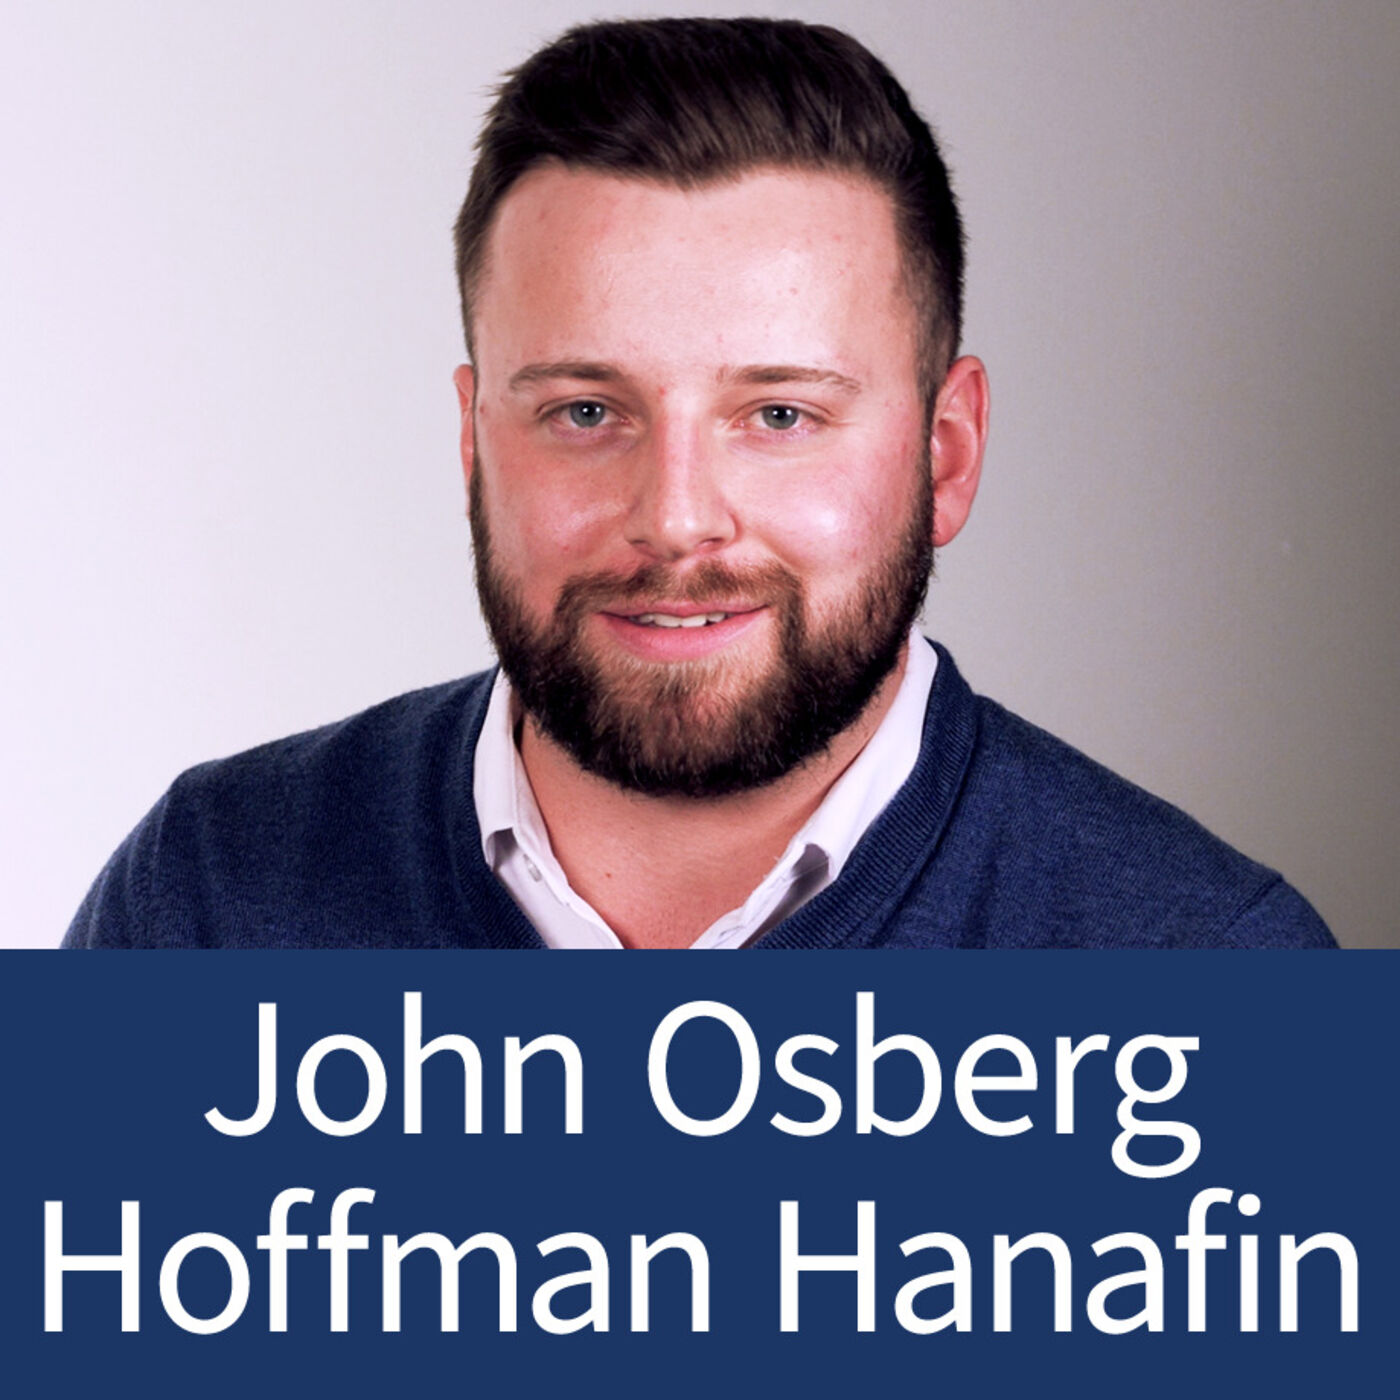 John Osberg - Hoffman Hanafin - The Importance of Connections - Episode 11